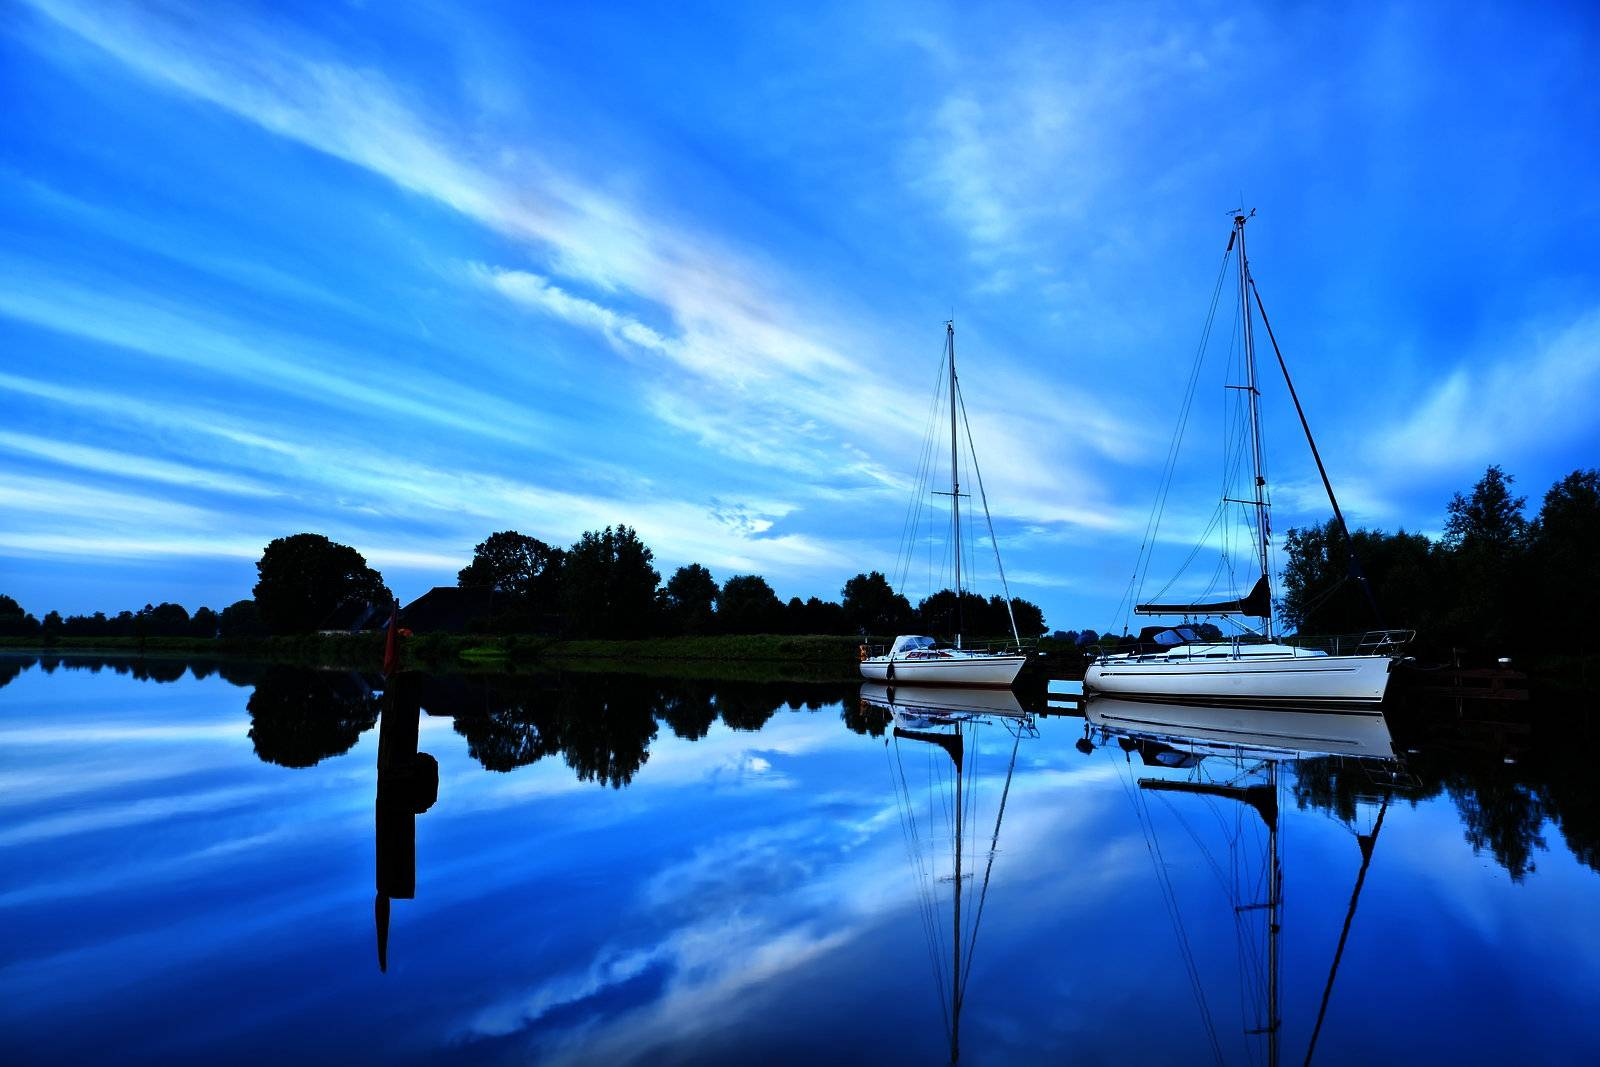 yacht, boat, ship, river, canal, water - D8215064